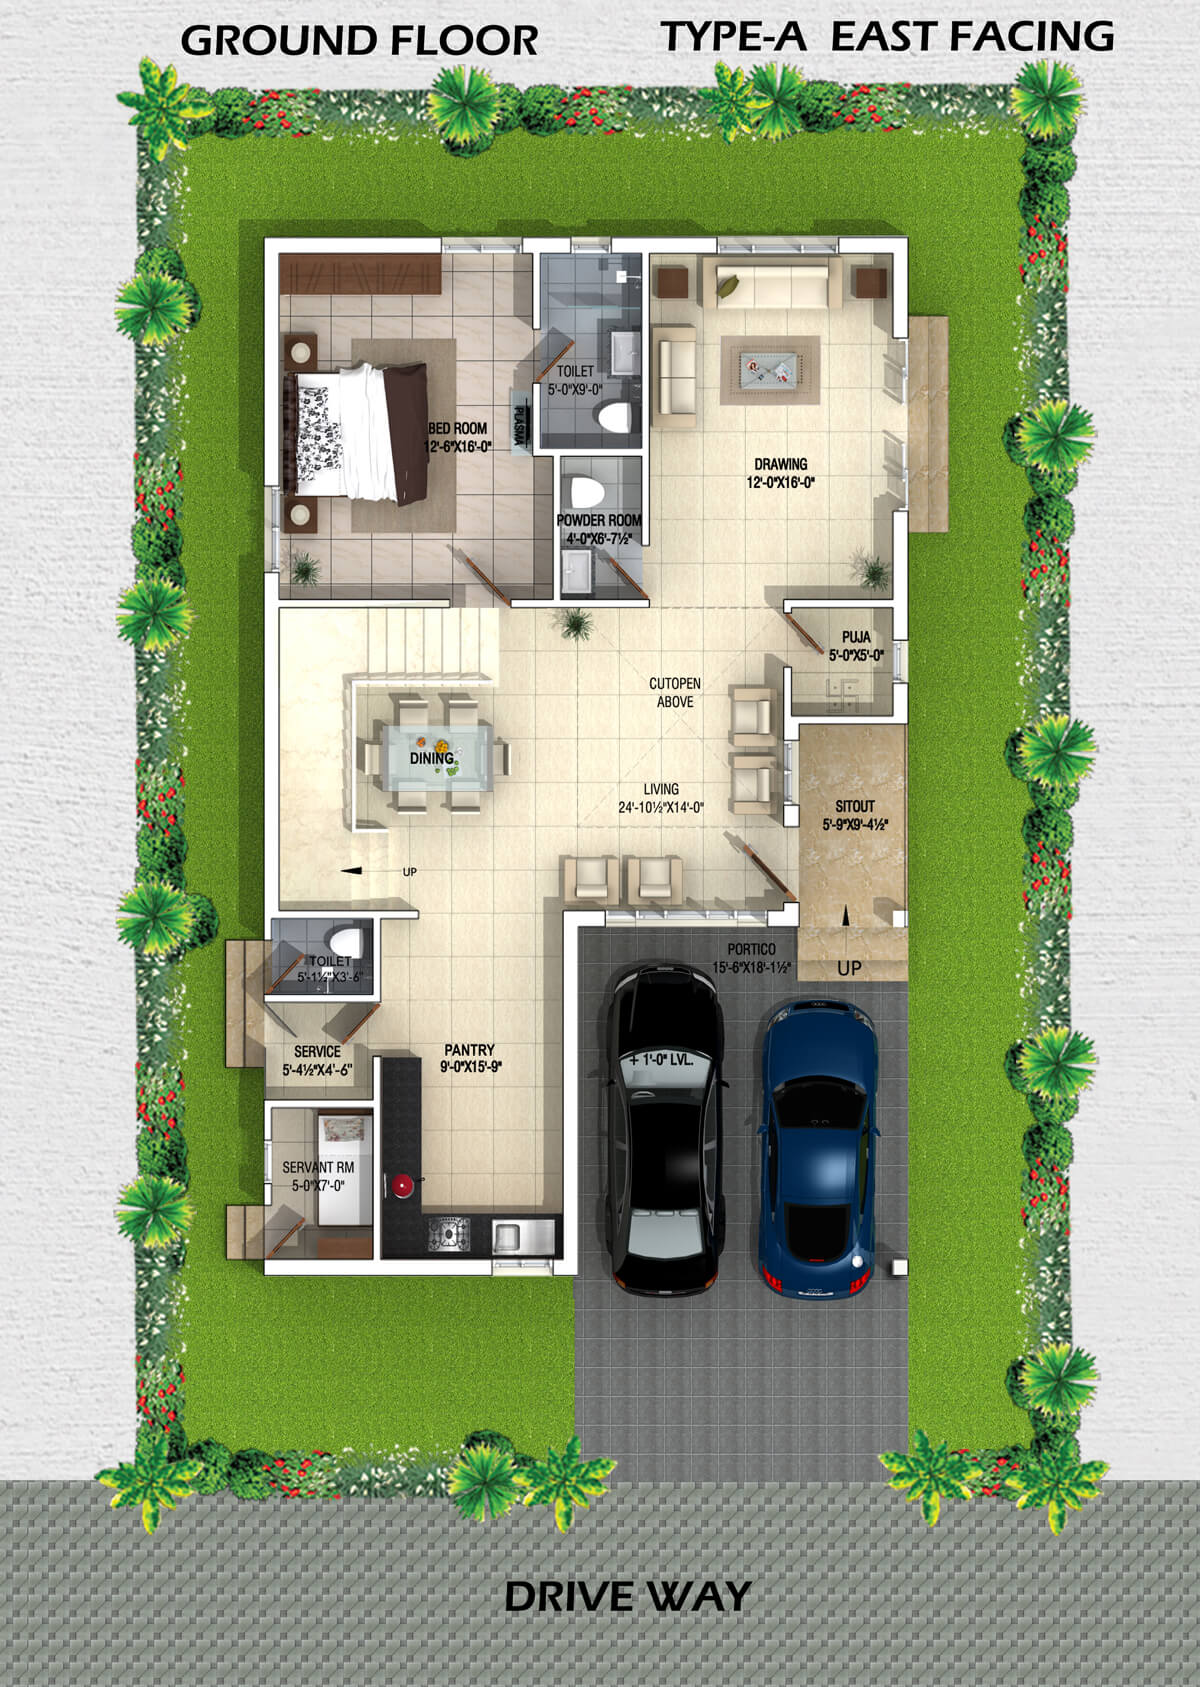 Myans villas type a east facing villas for Home layout planner